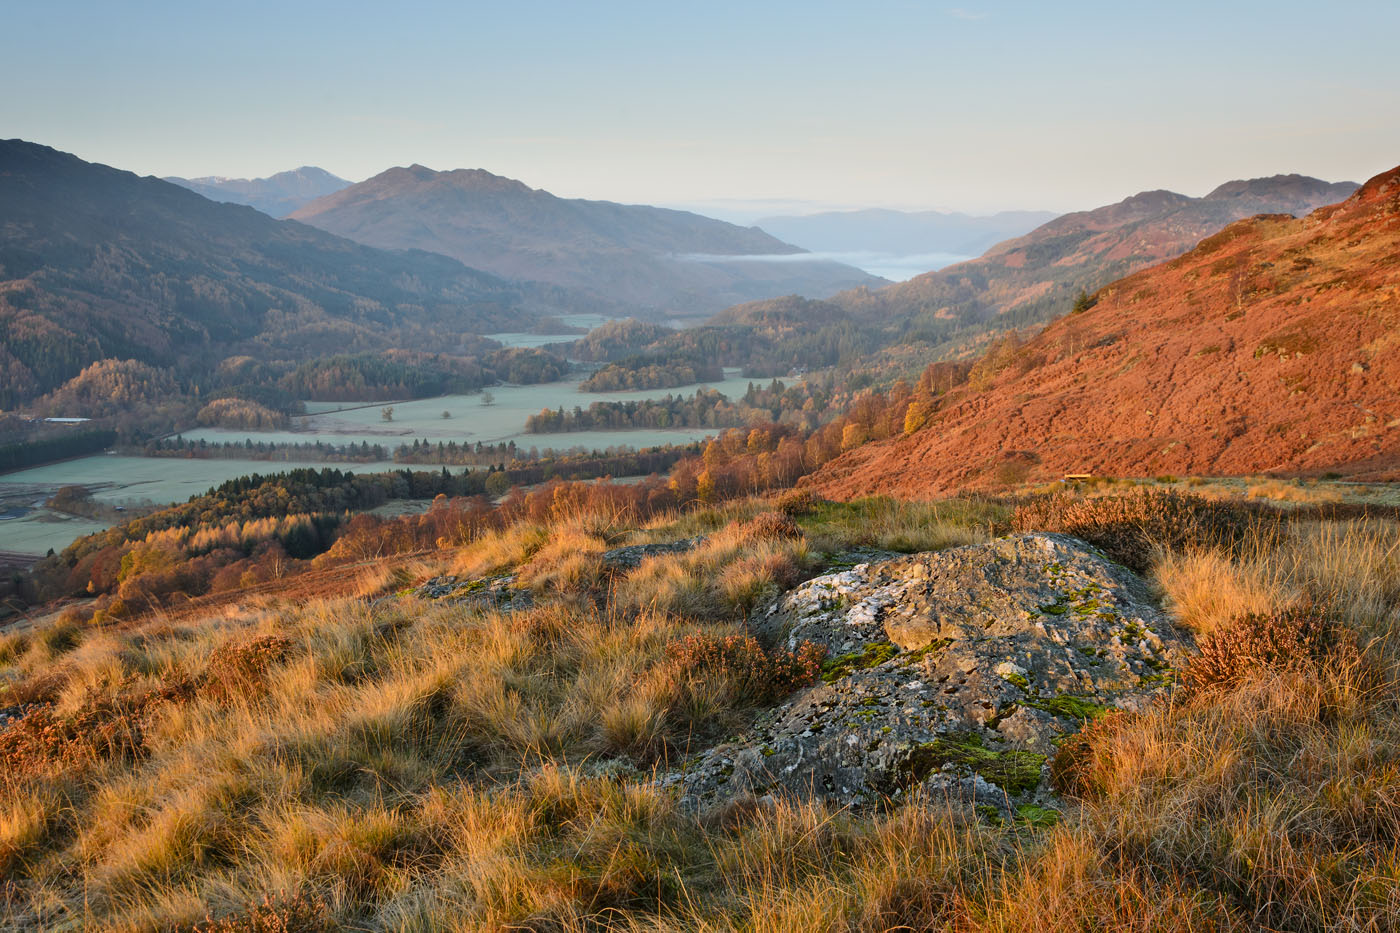 Strathearn Morning with Loch Earn in the Distance